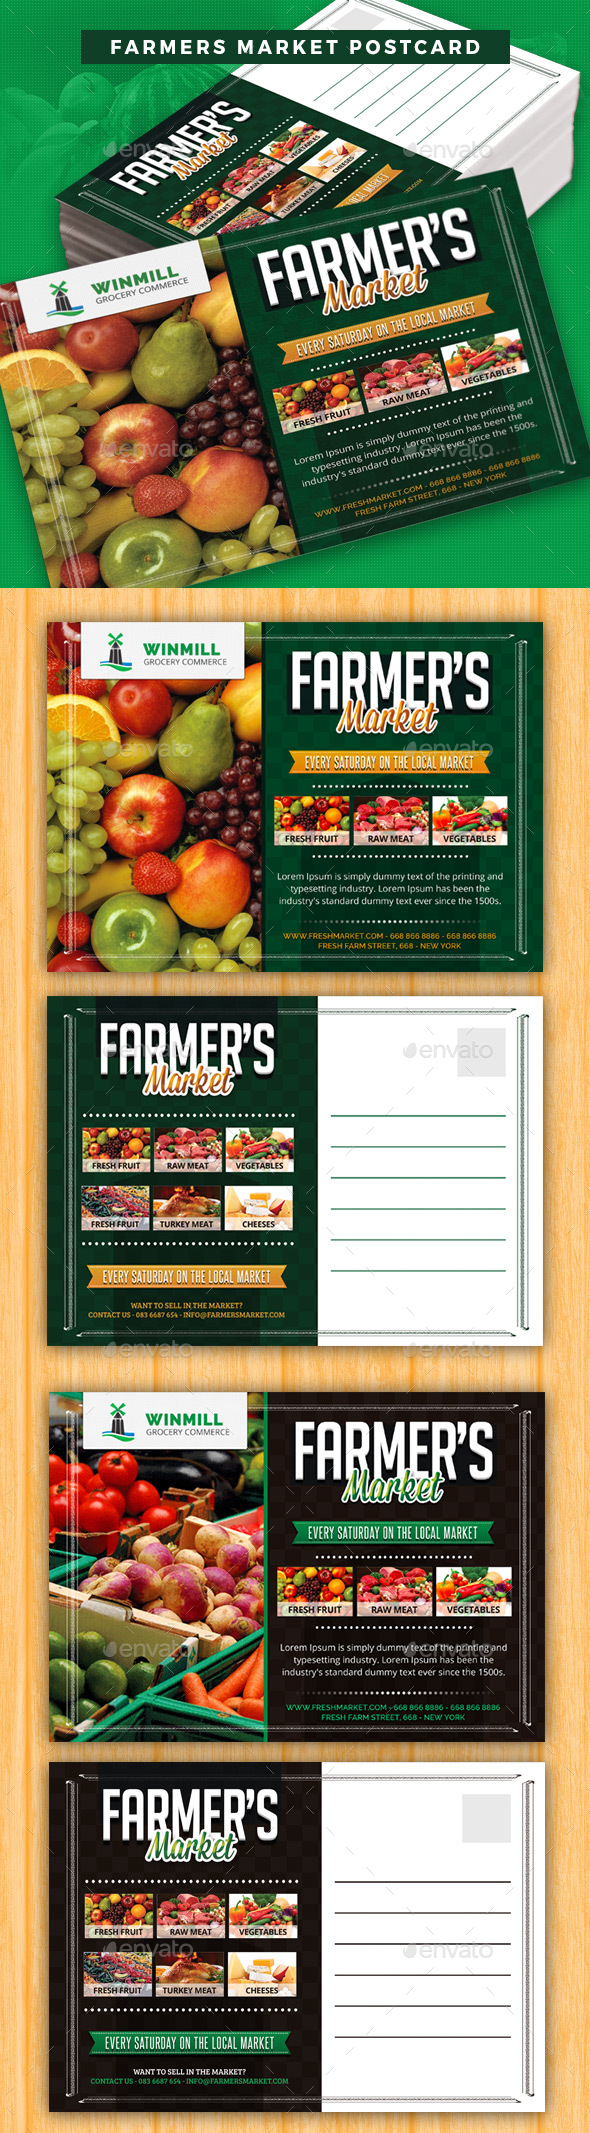 Farmers Market Postcard Template - Cards & Invites Print Templates